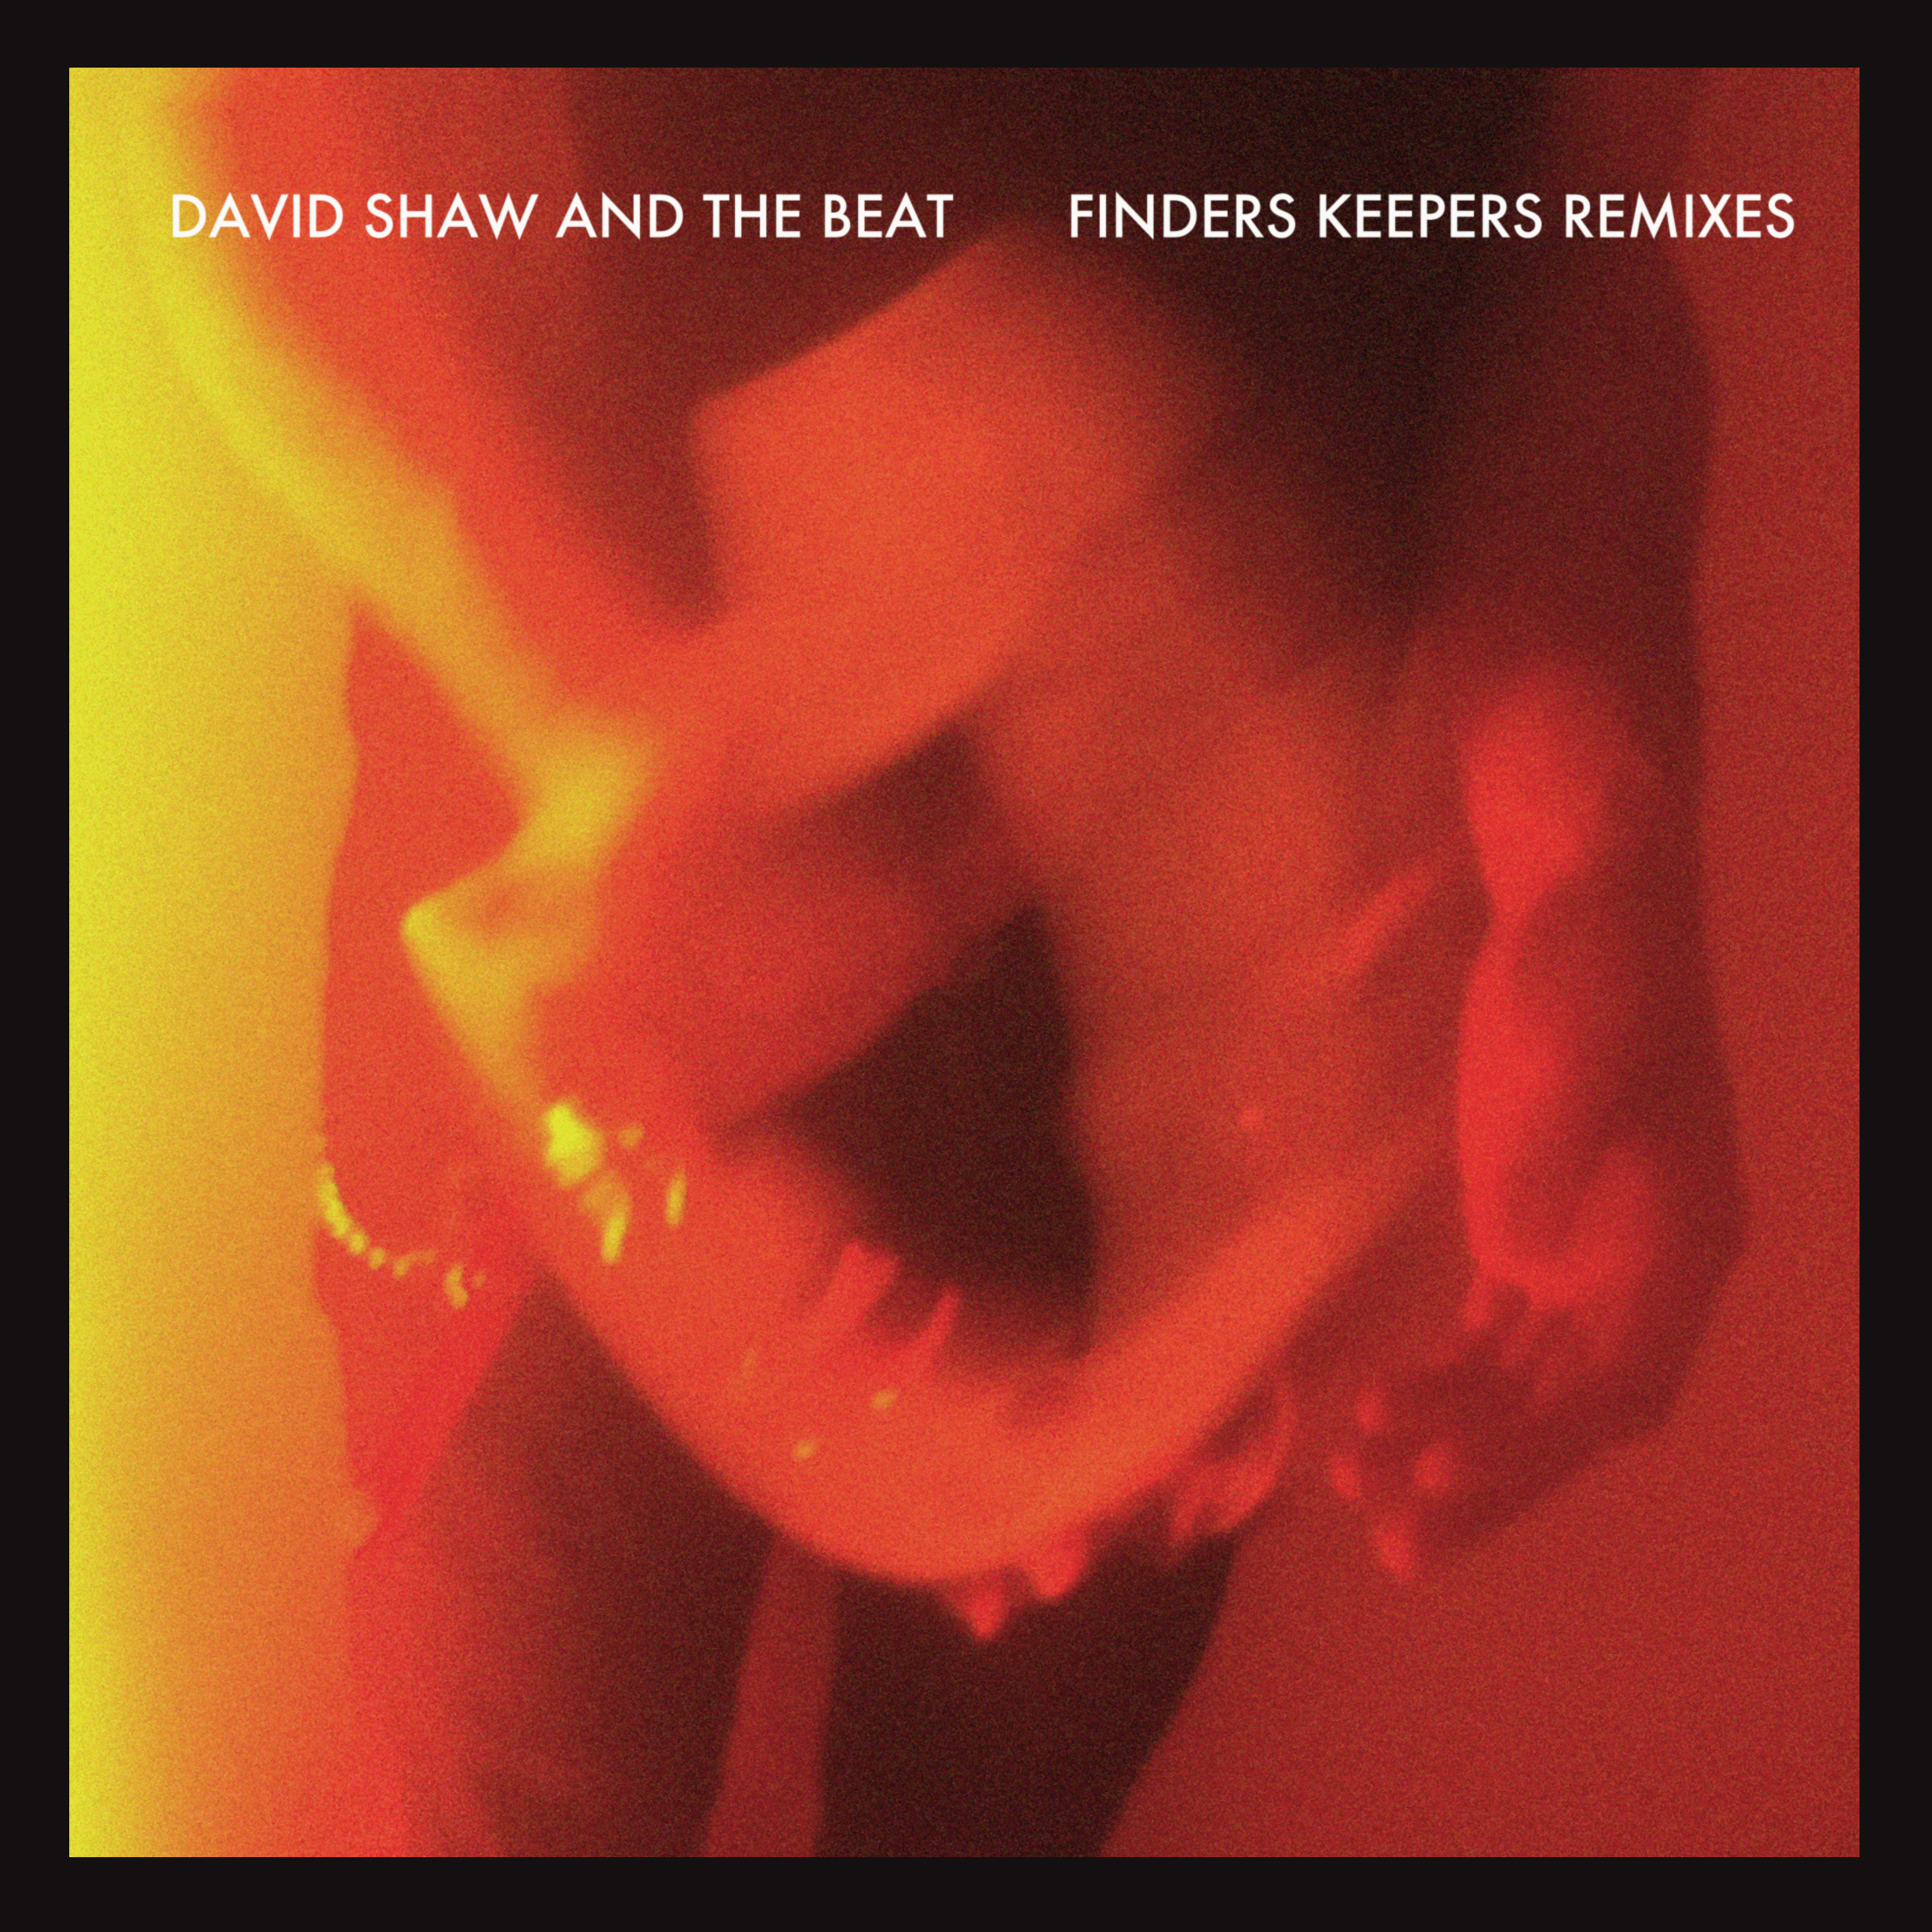 Finders Keepers Remixes - David Shaw